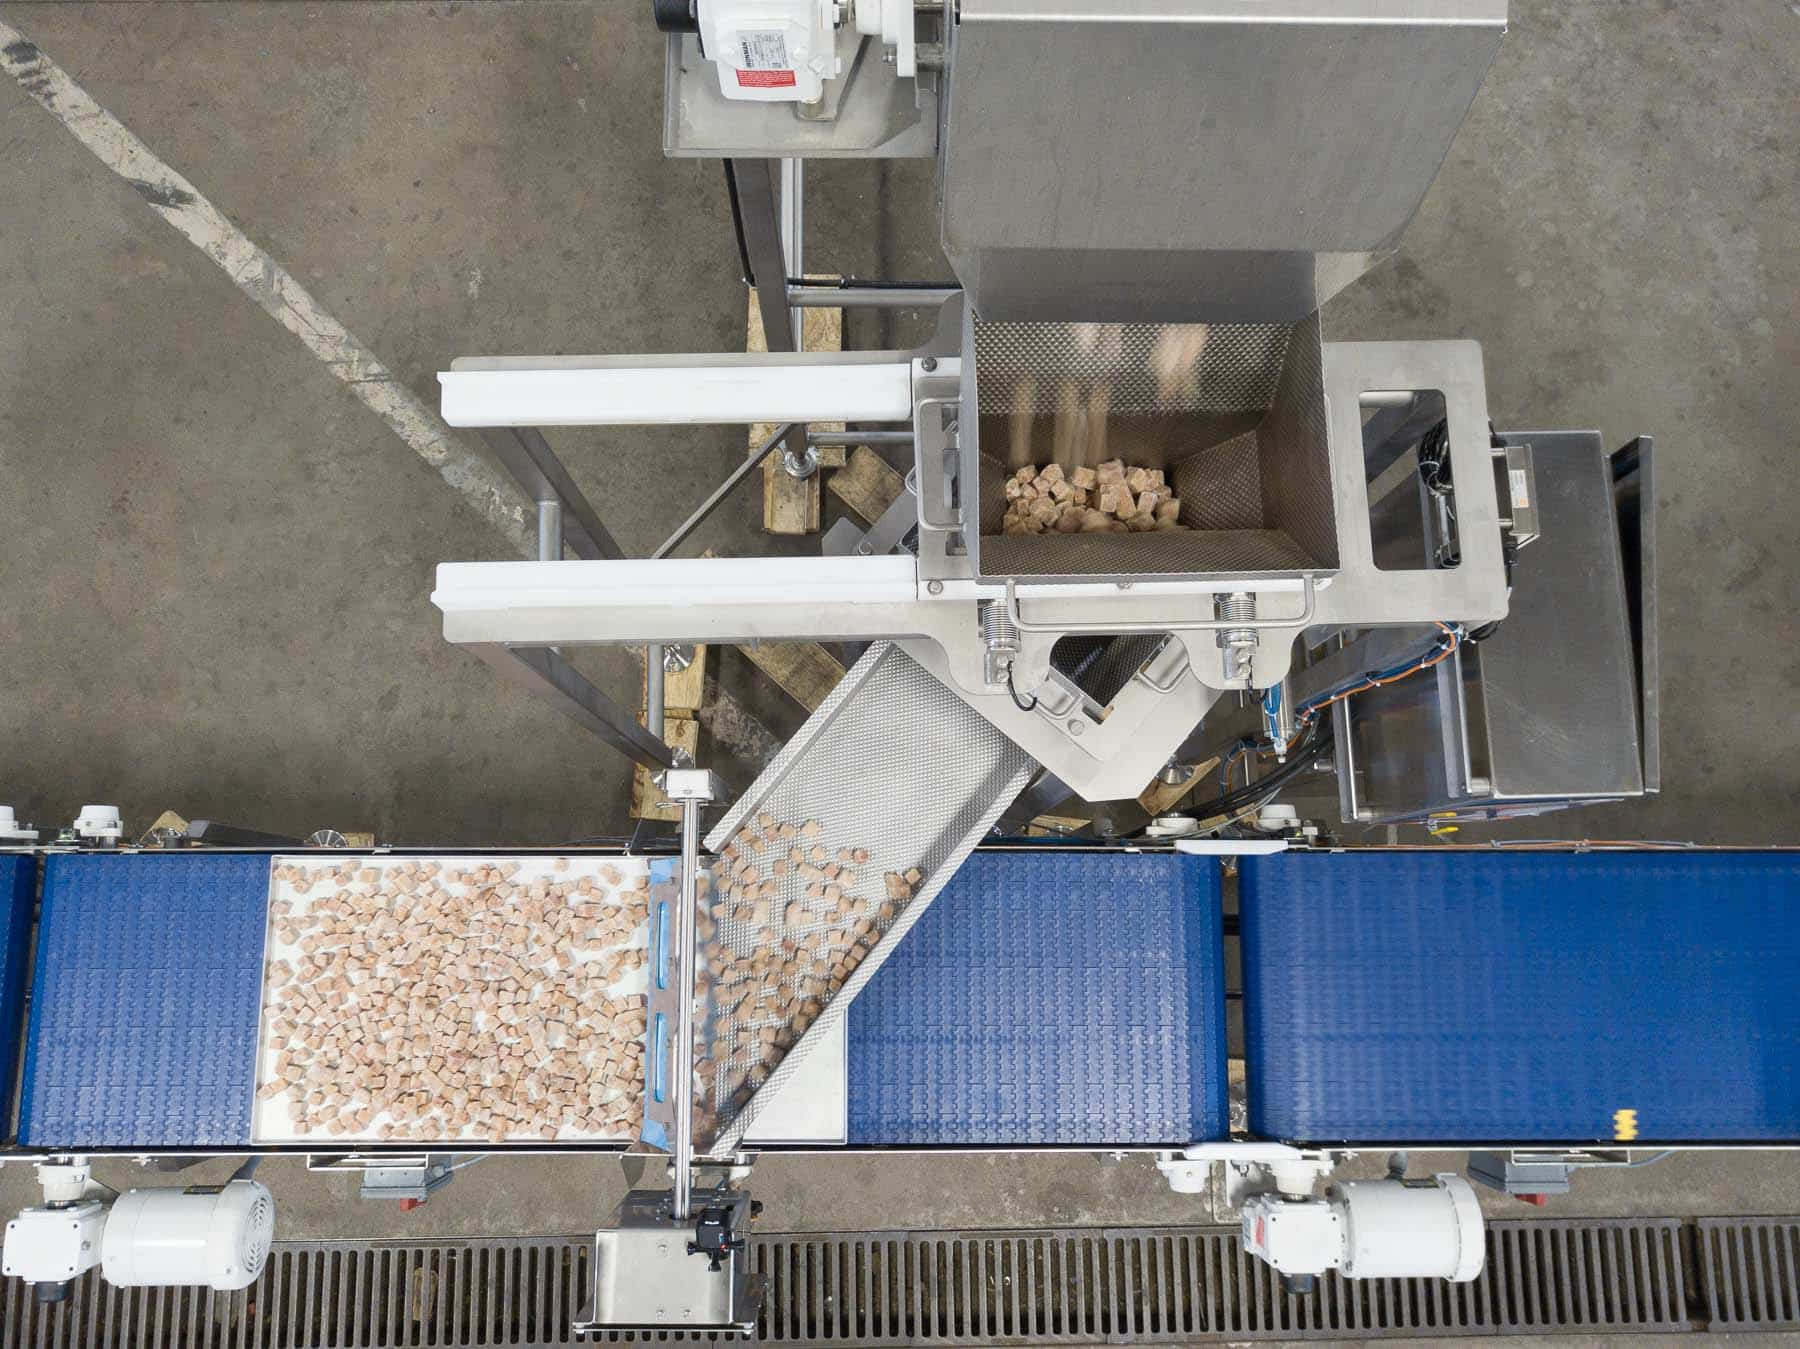 Stainless steel conveyor belts enhance food grade cleanliness